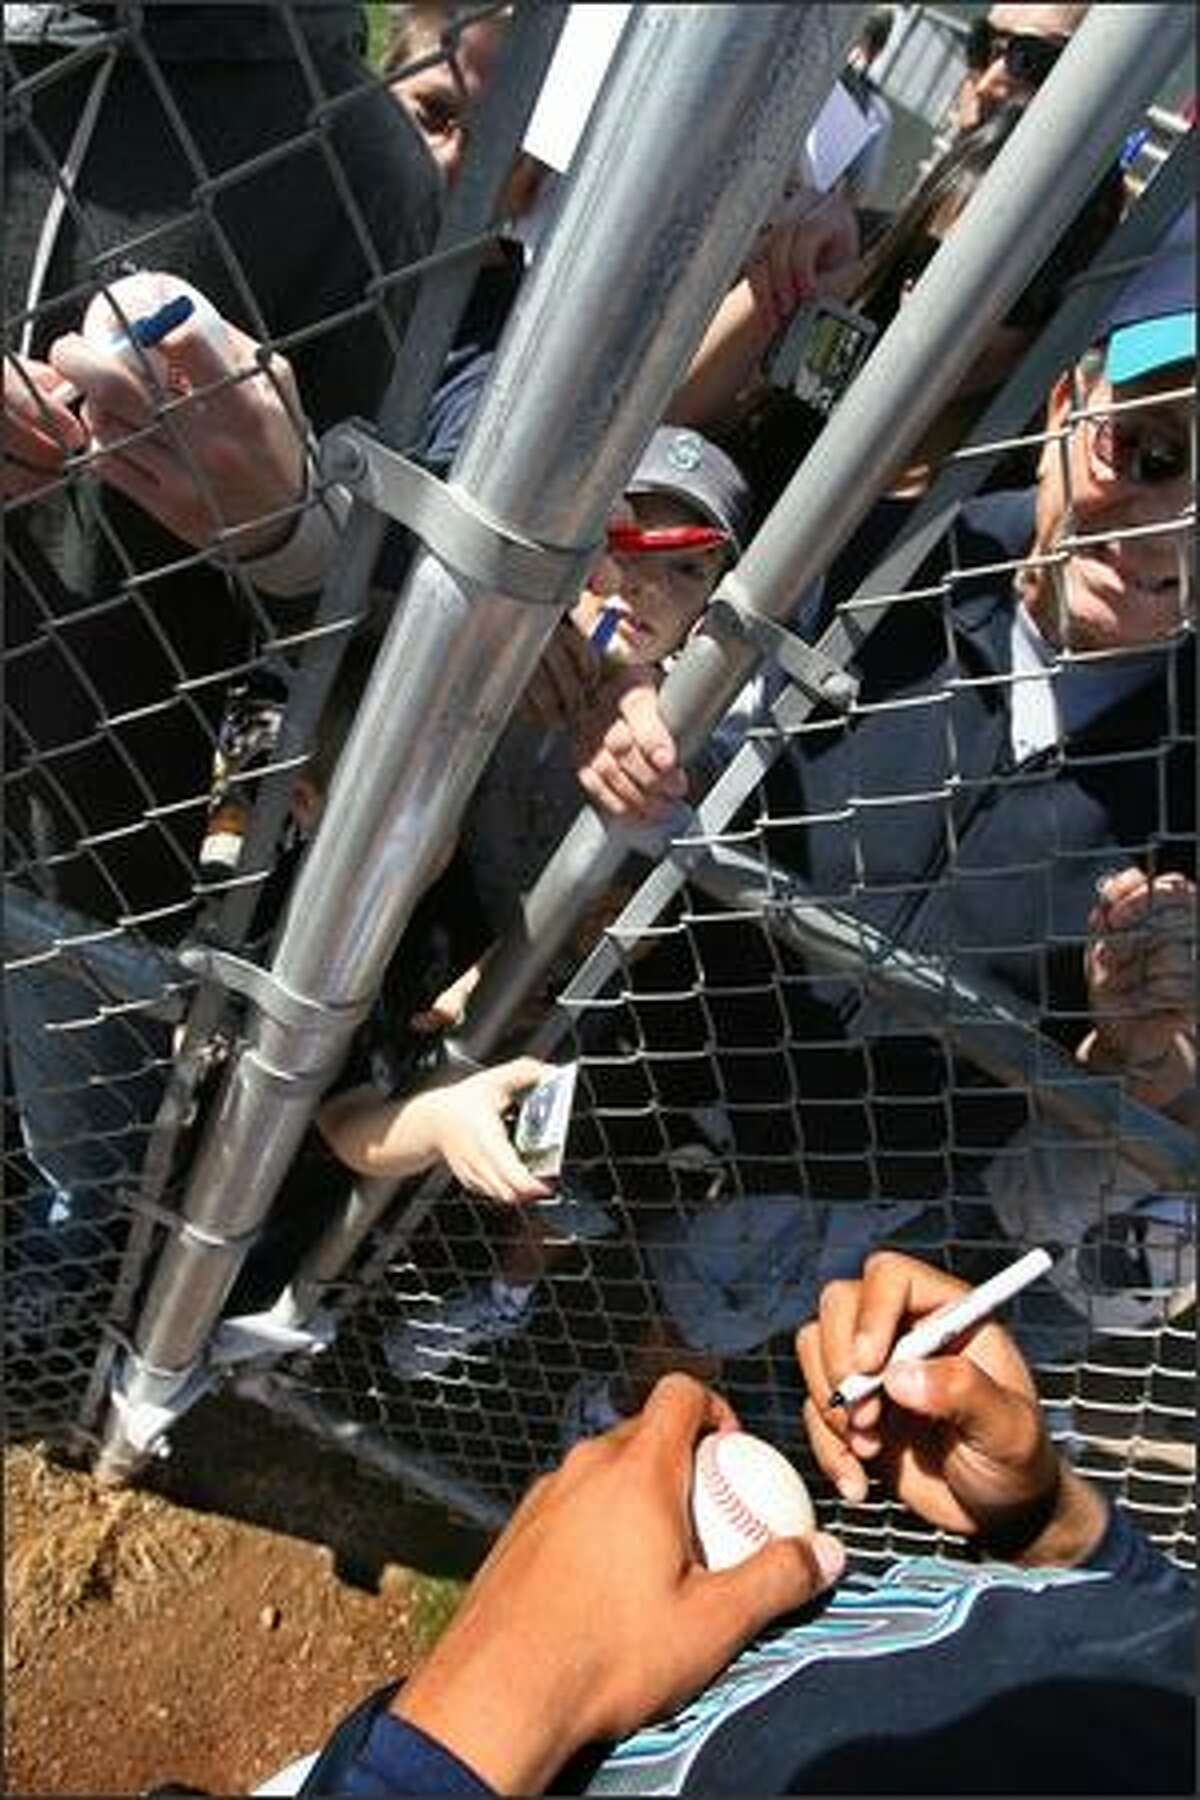 Fans press up against the fence as they try to get Felix Hernandez's autograph during the Seattle Mariners workout on the second day of full-squad worksouts in Peoria, Ariz.